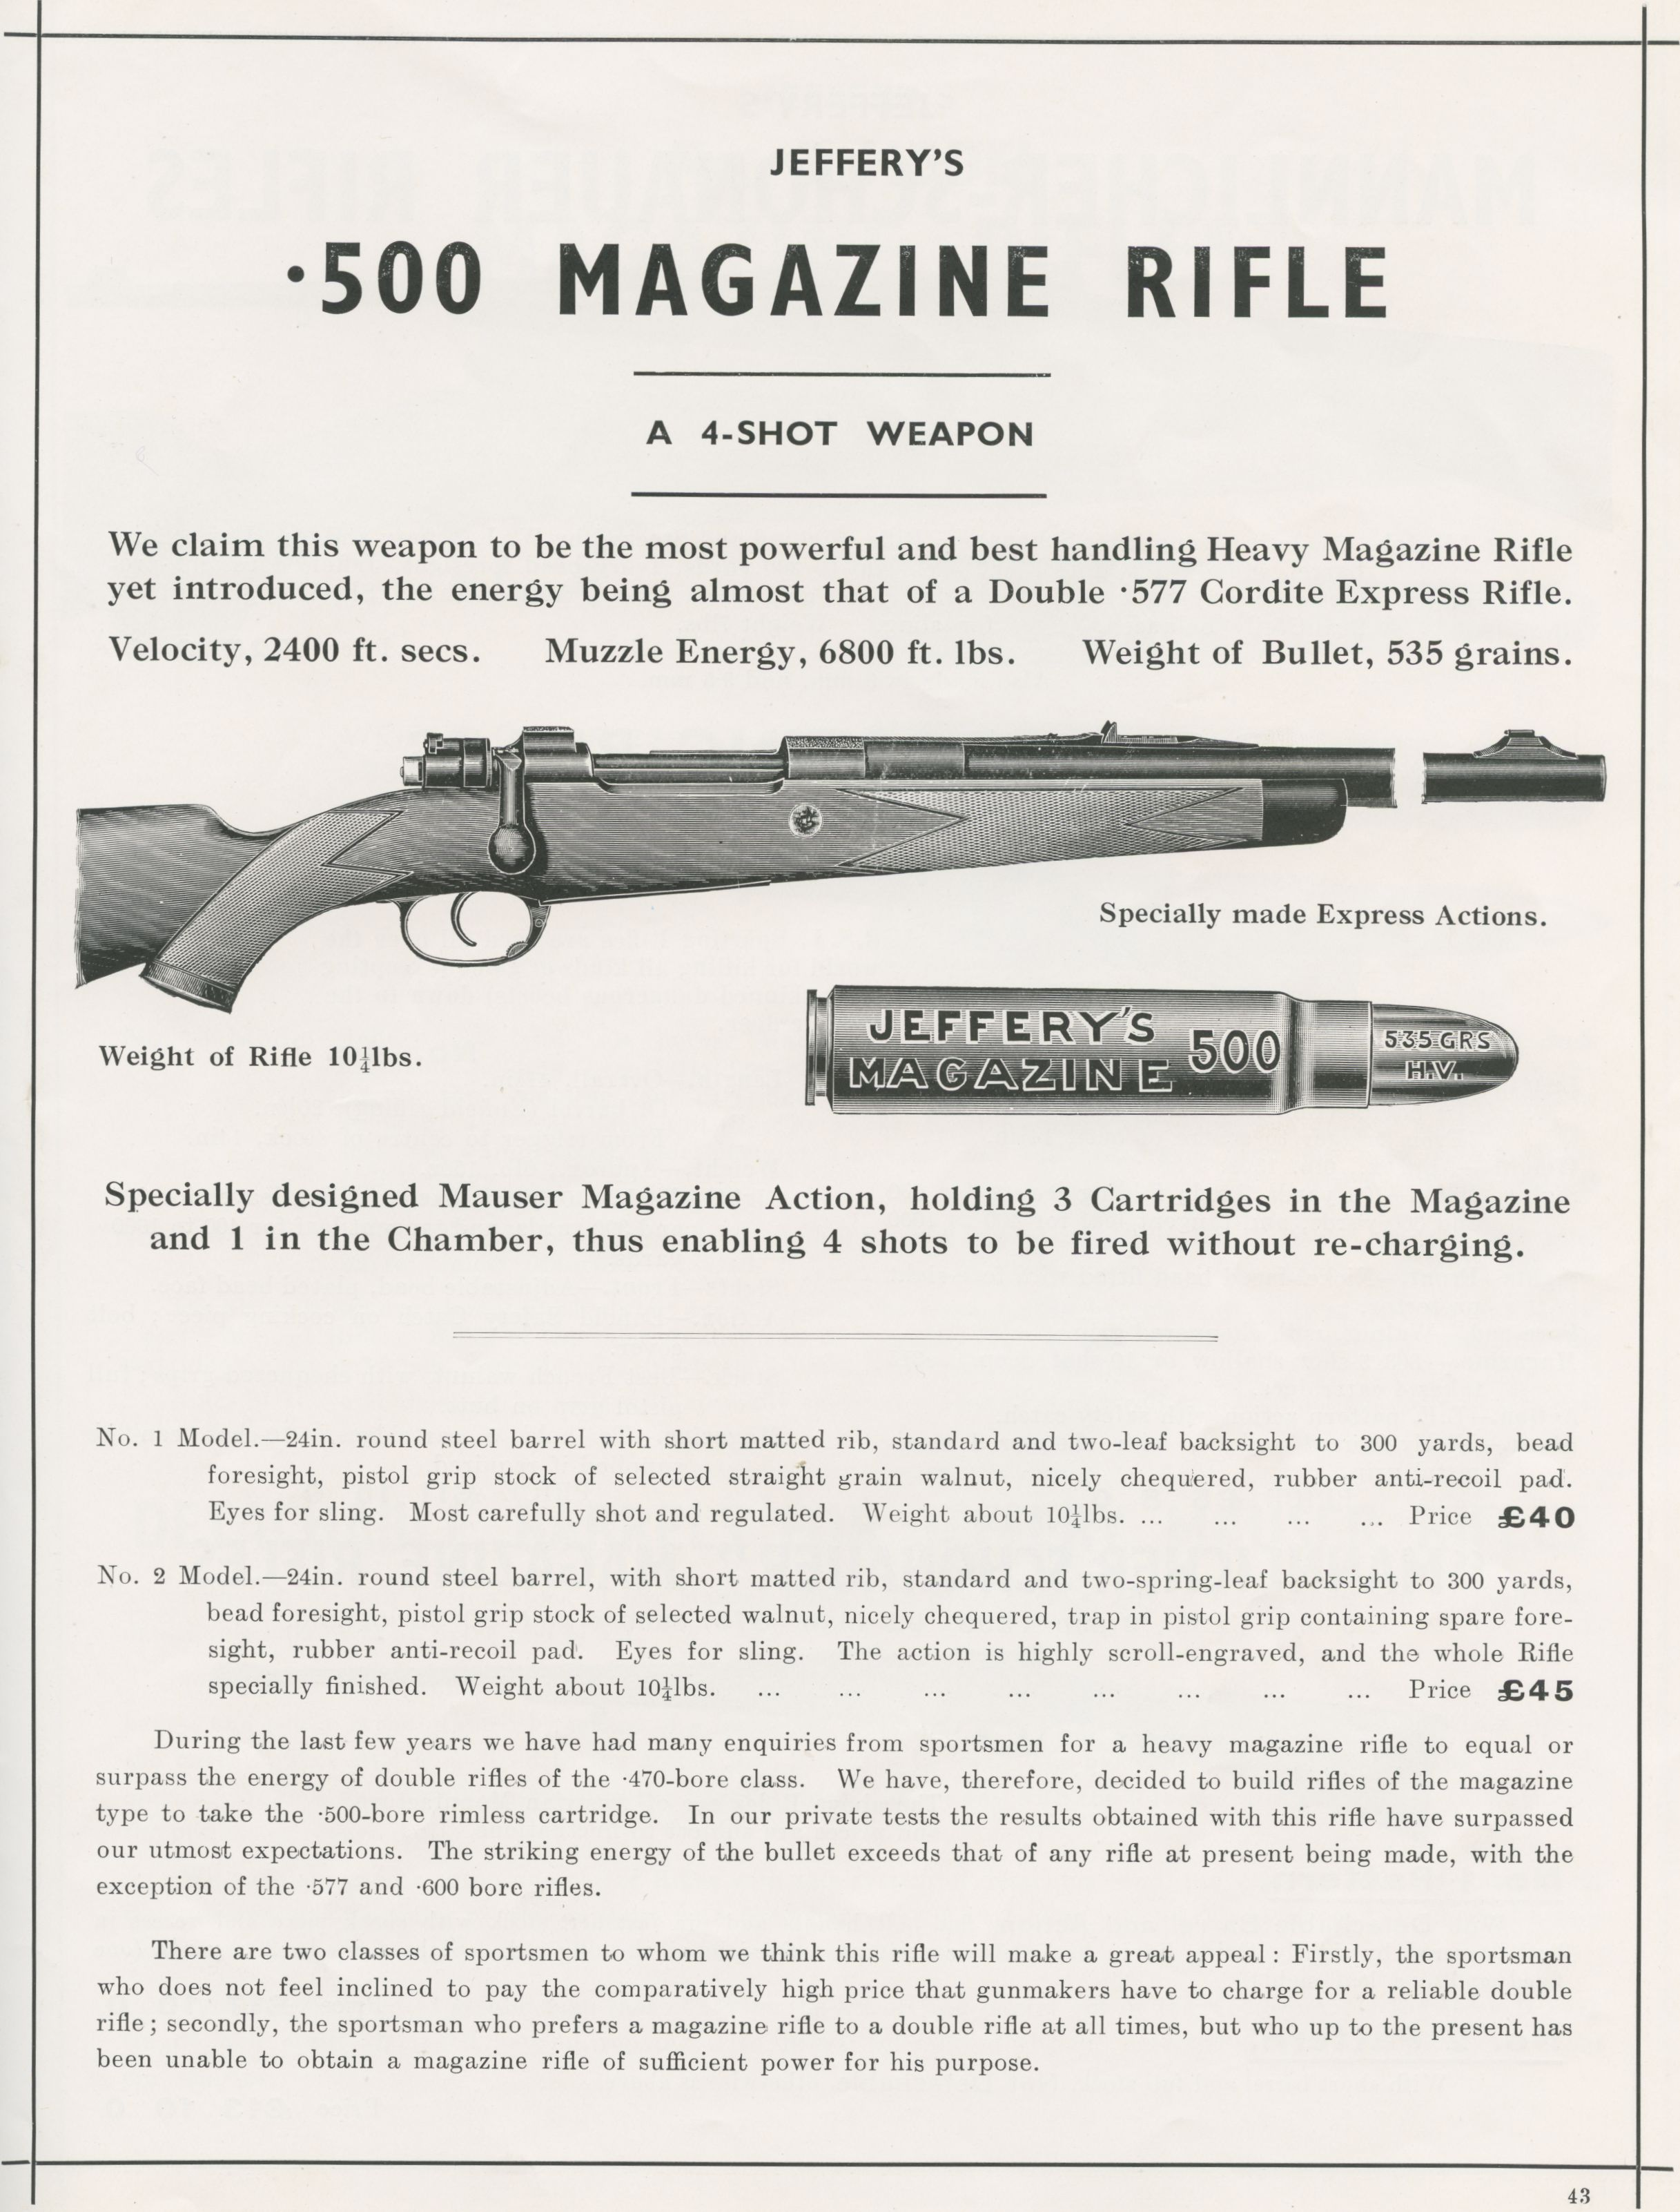 Jeffery advertisement for his Express rifles